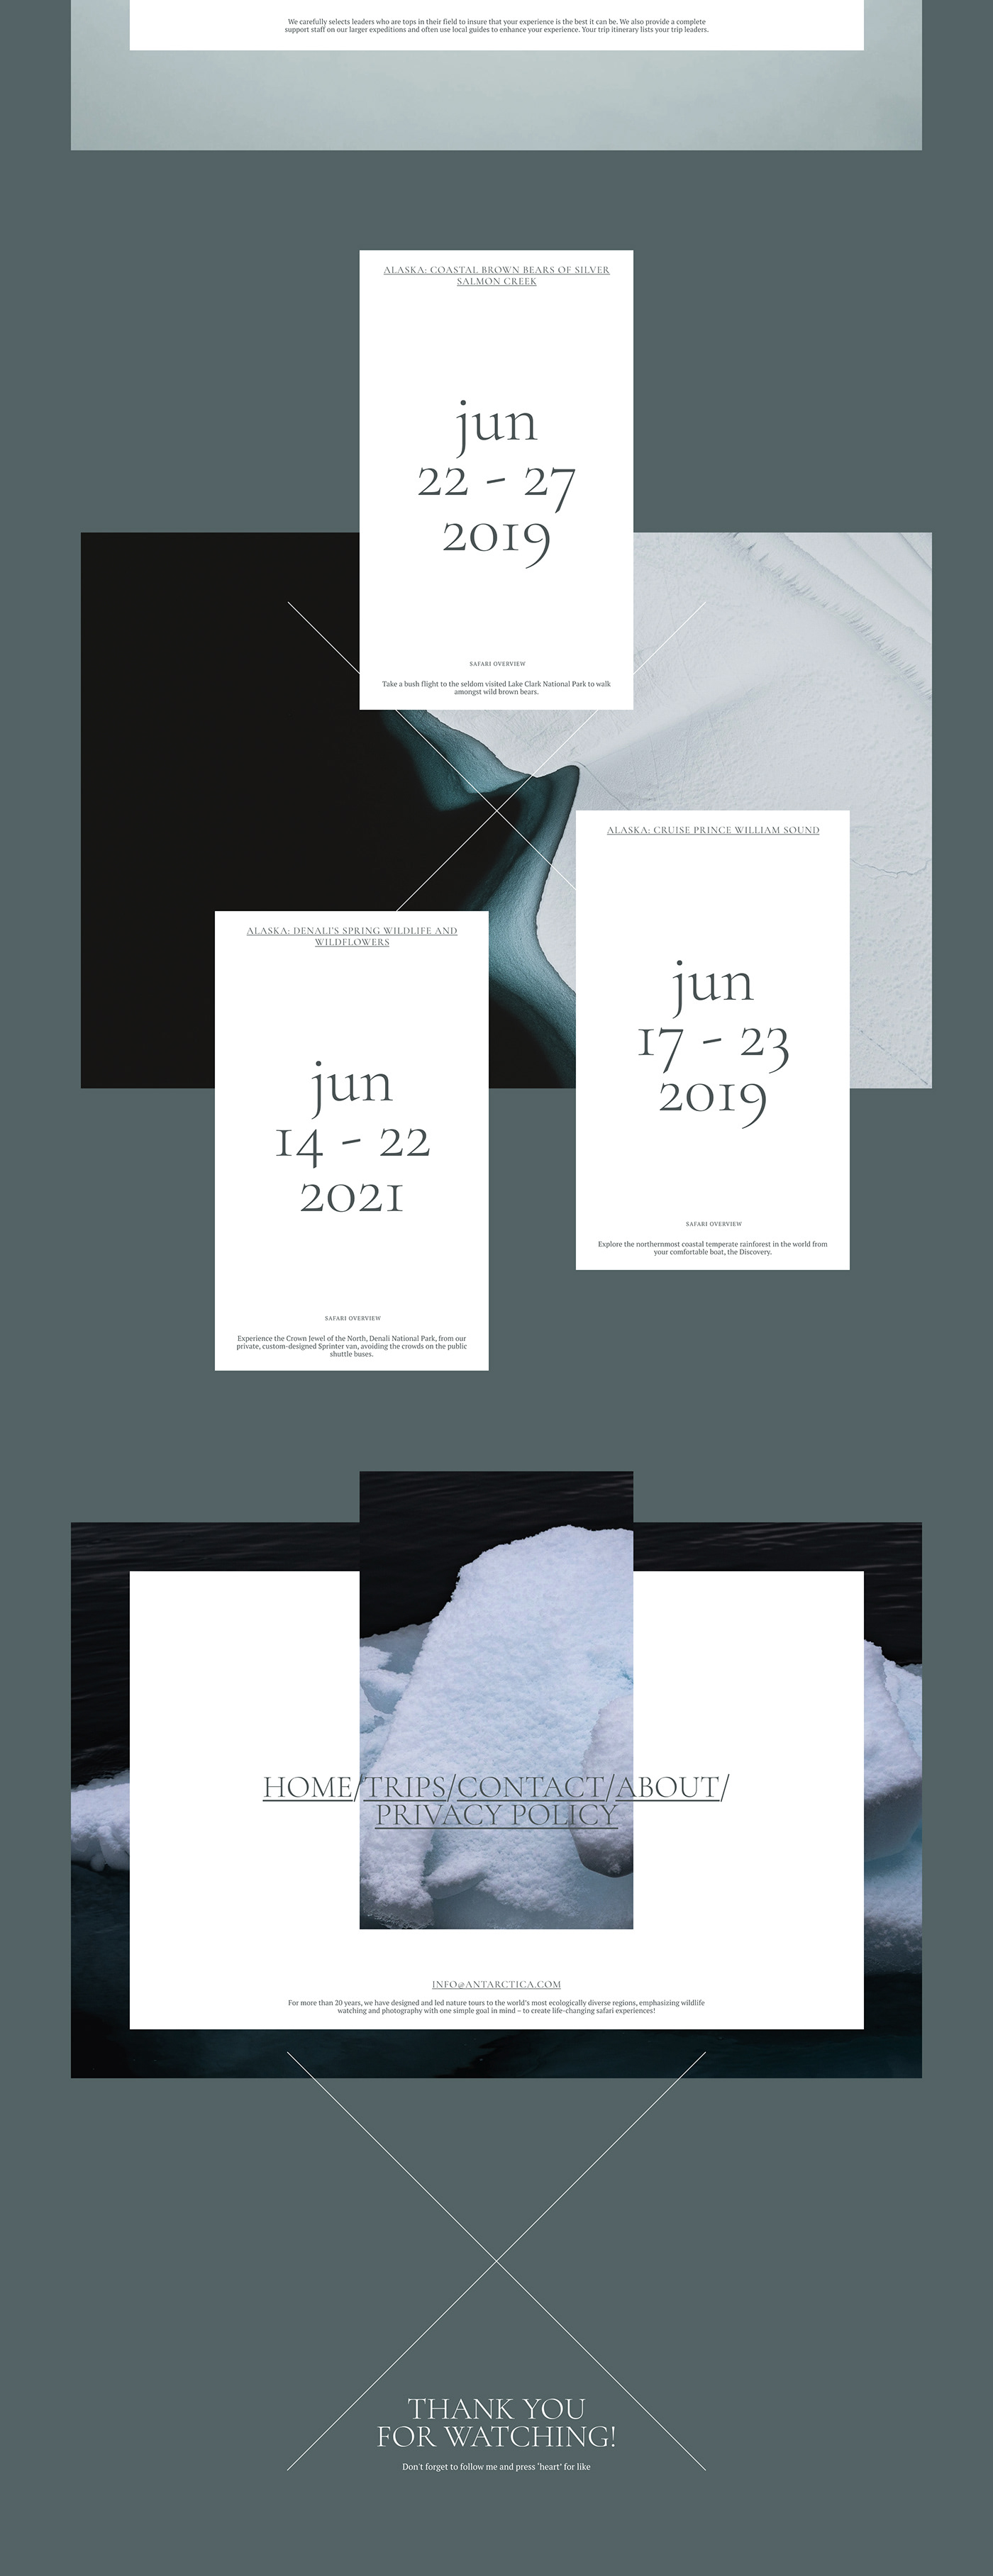 UI,ux,Ecology,safari,winter,snow,ice,interaction,typography  ,grid